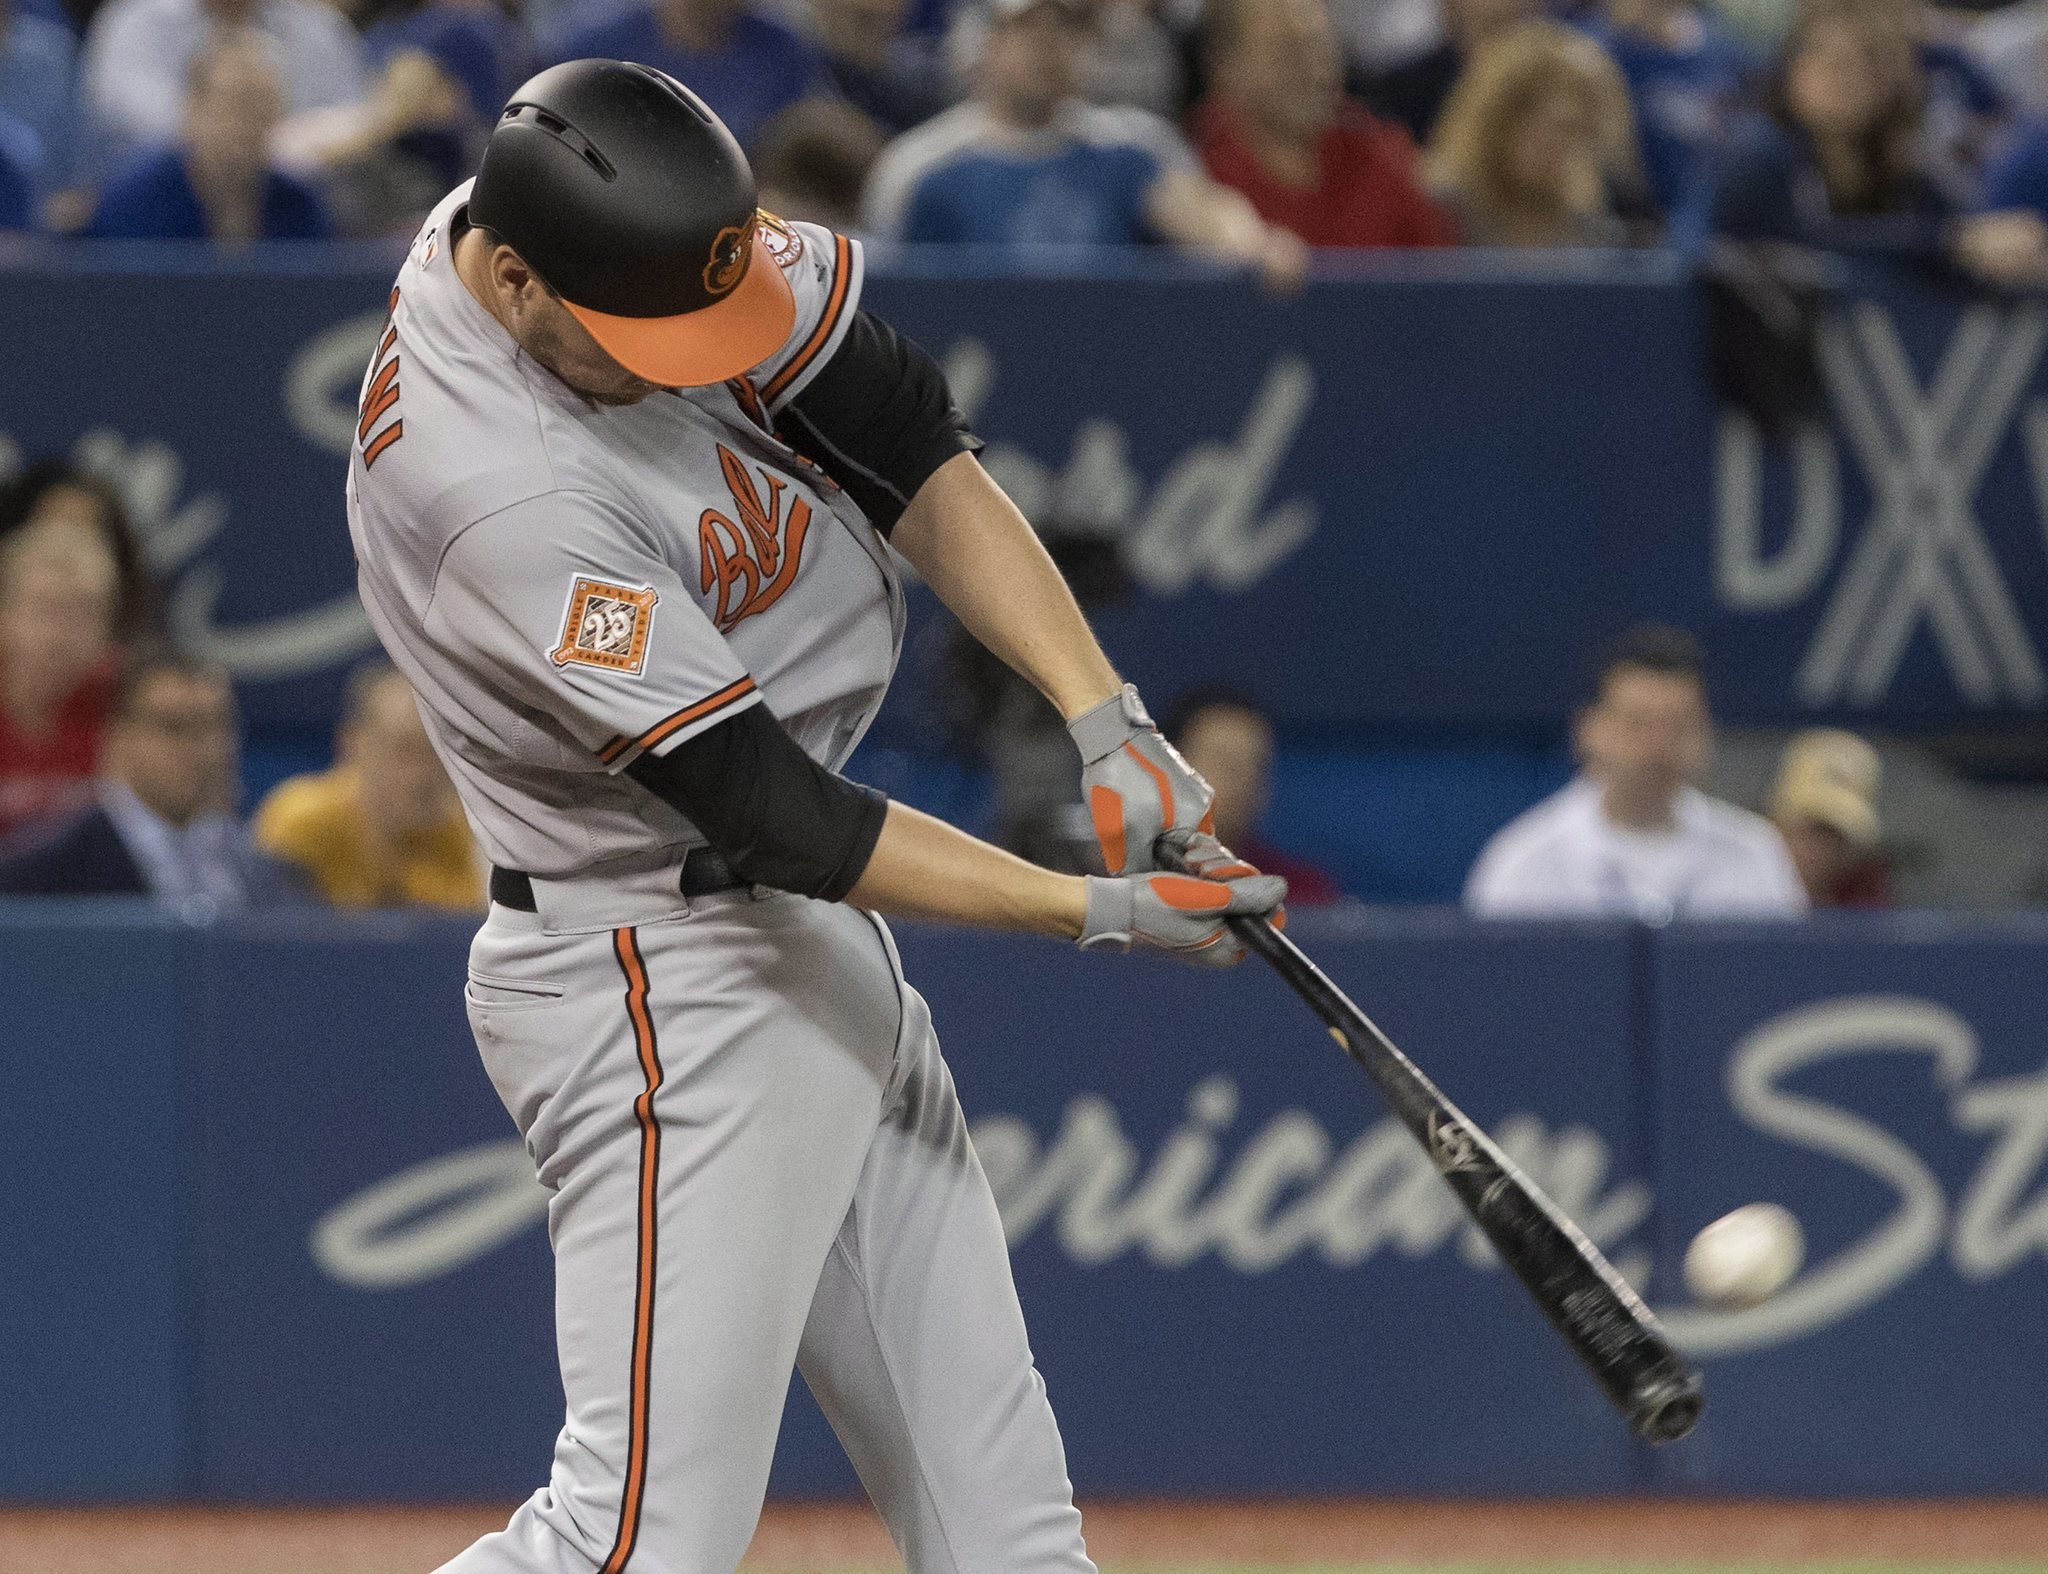 Bal-rookie-trey-mancini-impressing-the-orioles-clubhouse-in-his-subtle-record-setting-start-20170422